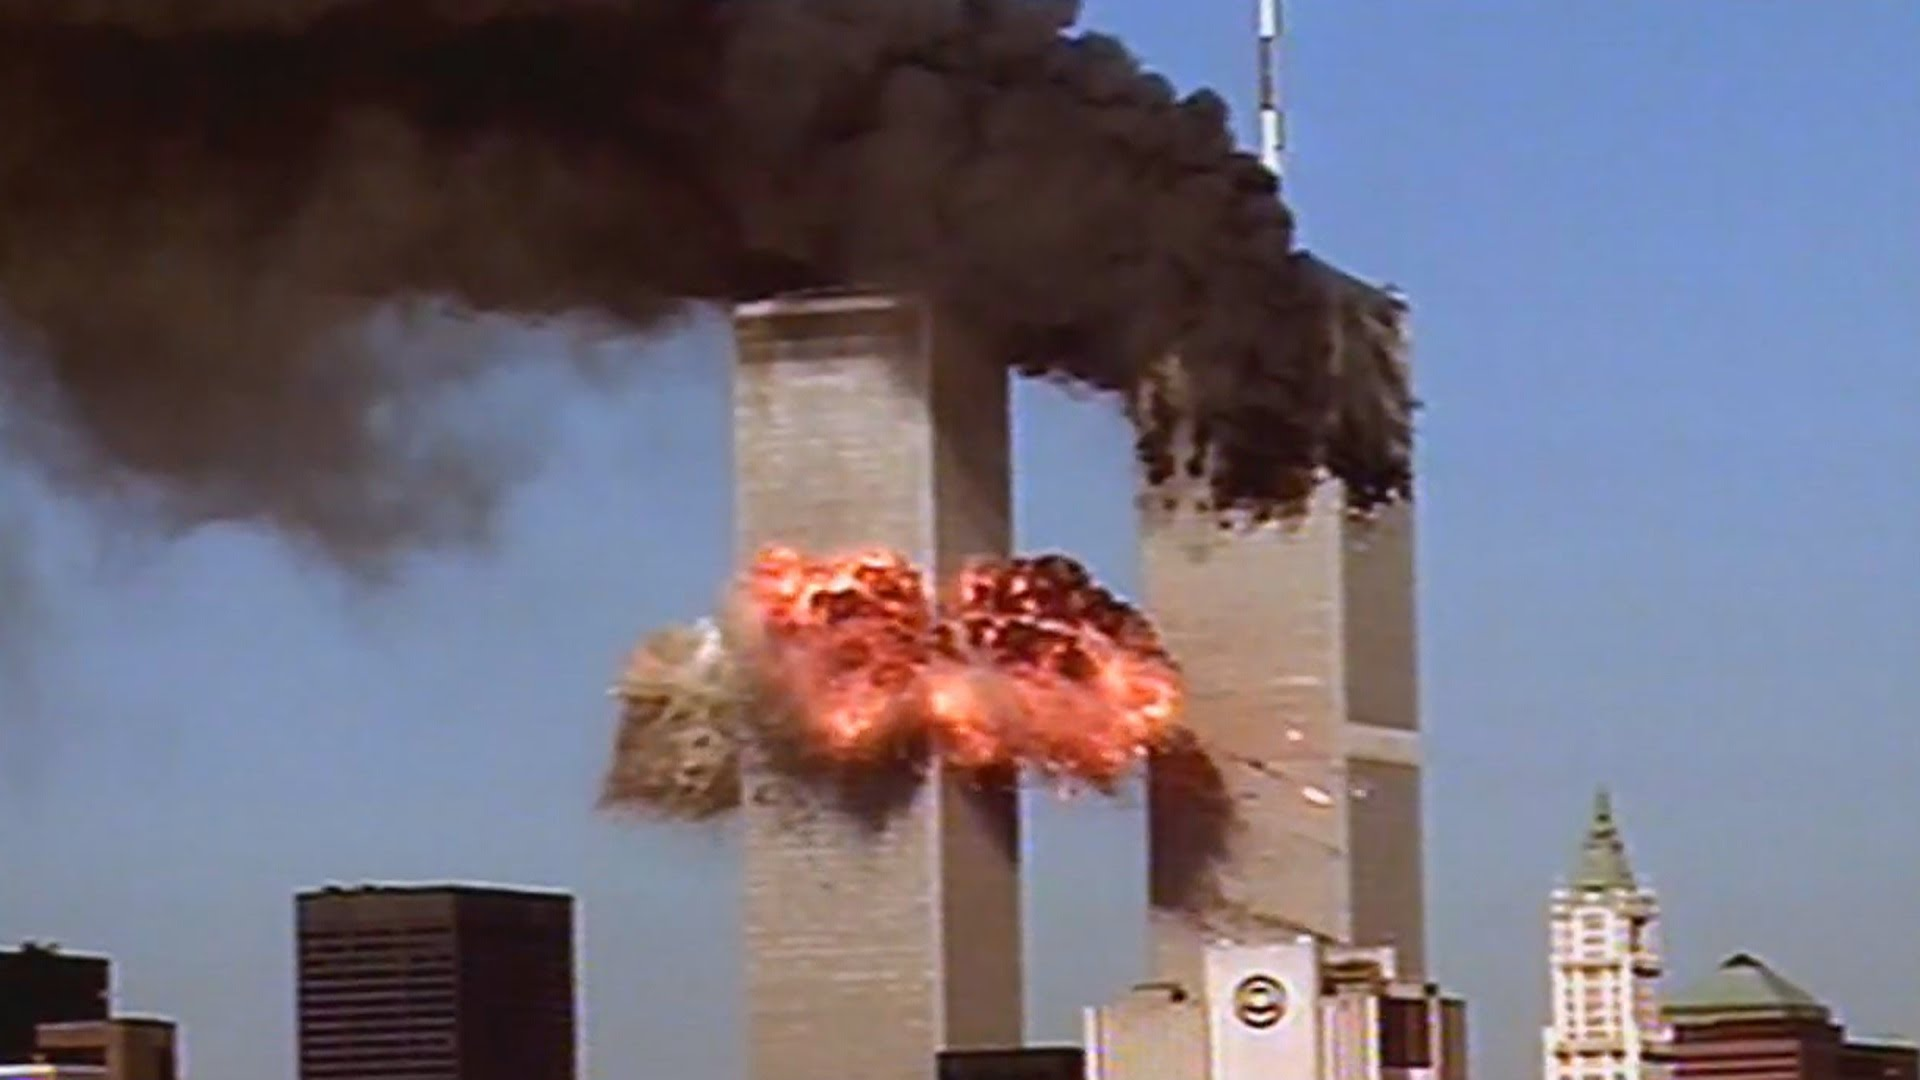 september 11 2001 and the world trade The world trade center (wtc) health program offers high-quality, compassionate care to those directly affected by the september 11th terrorist attacks in new york, the pentagon, and in shanksville, pennsylvania.